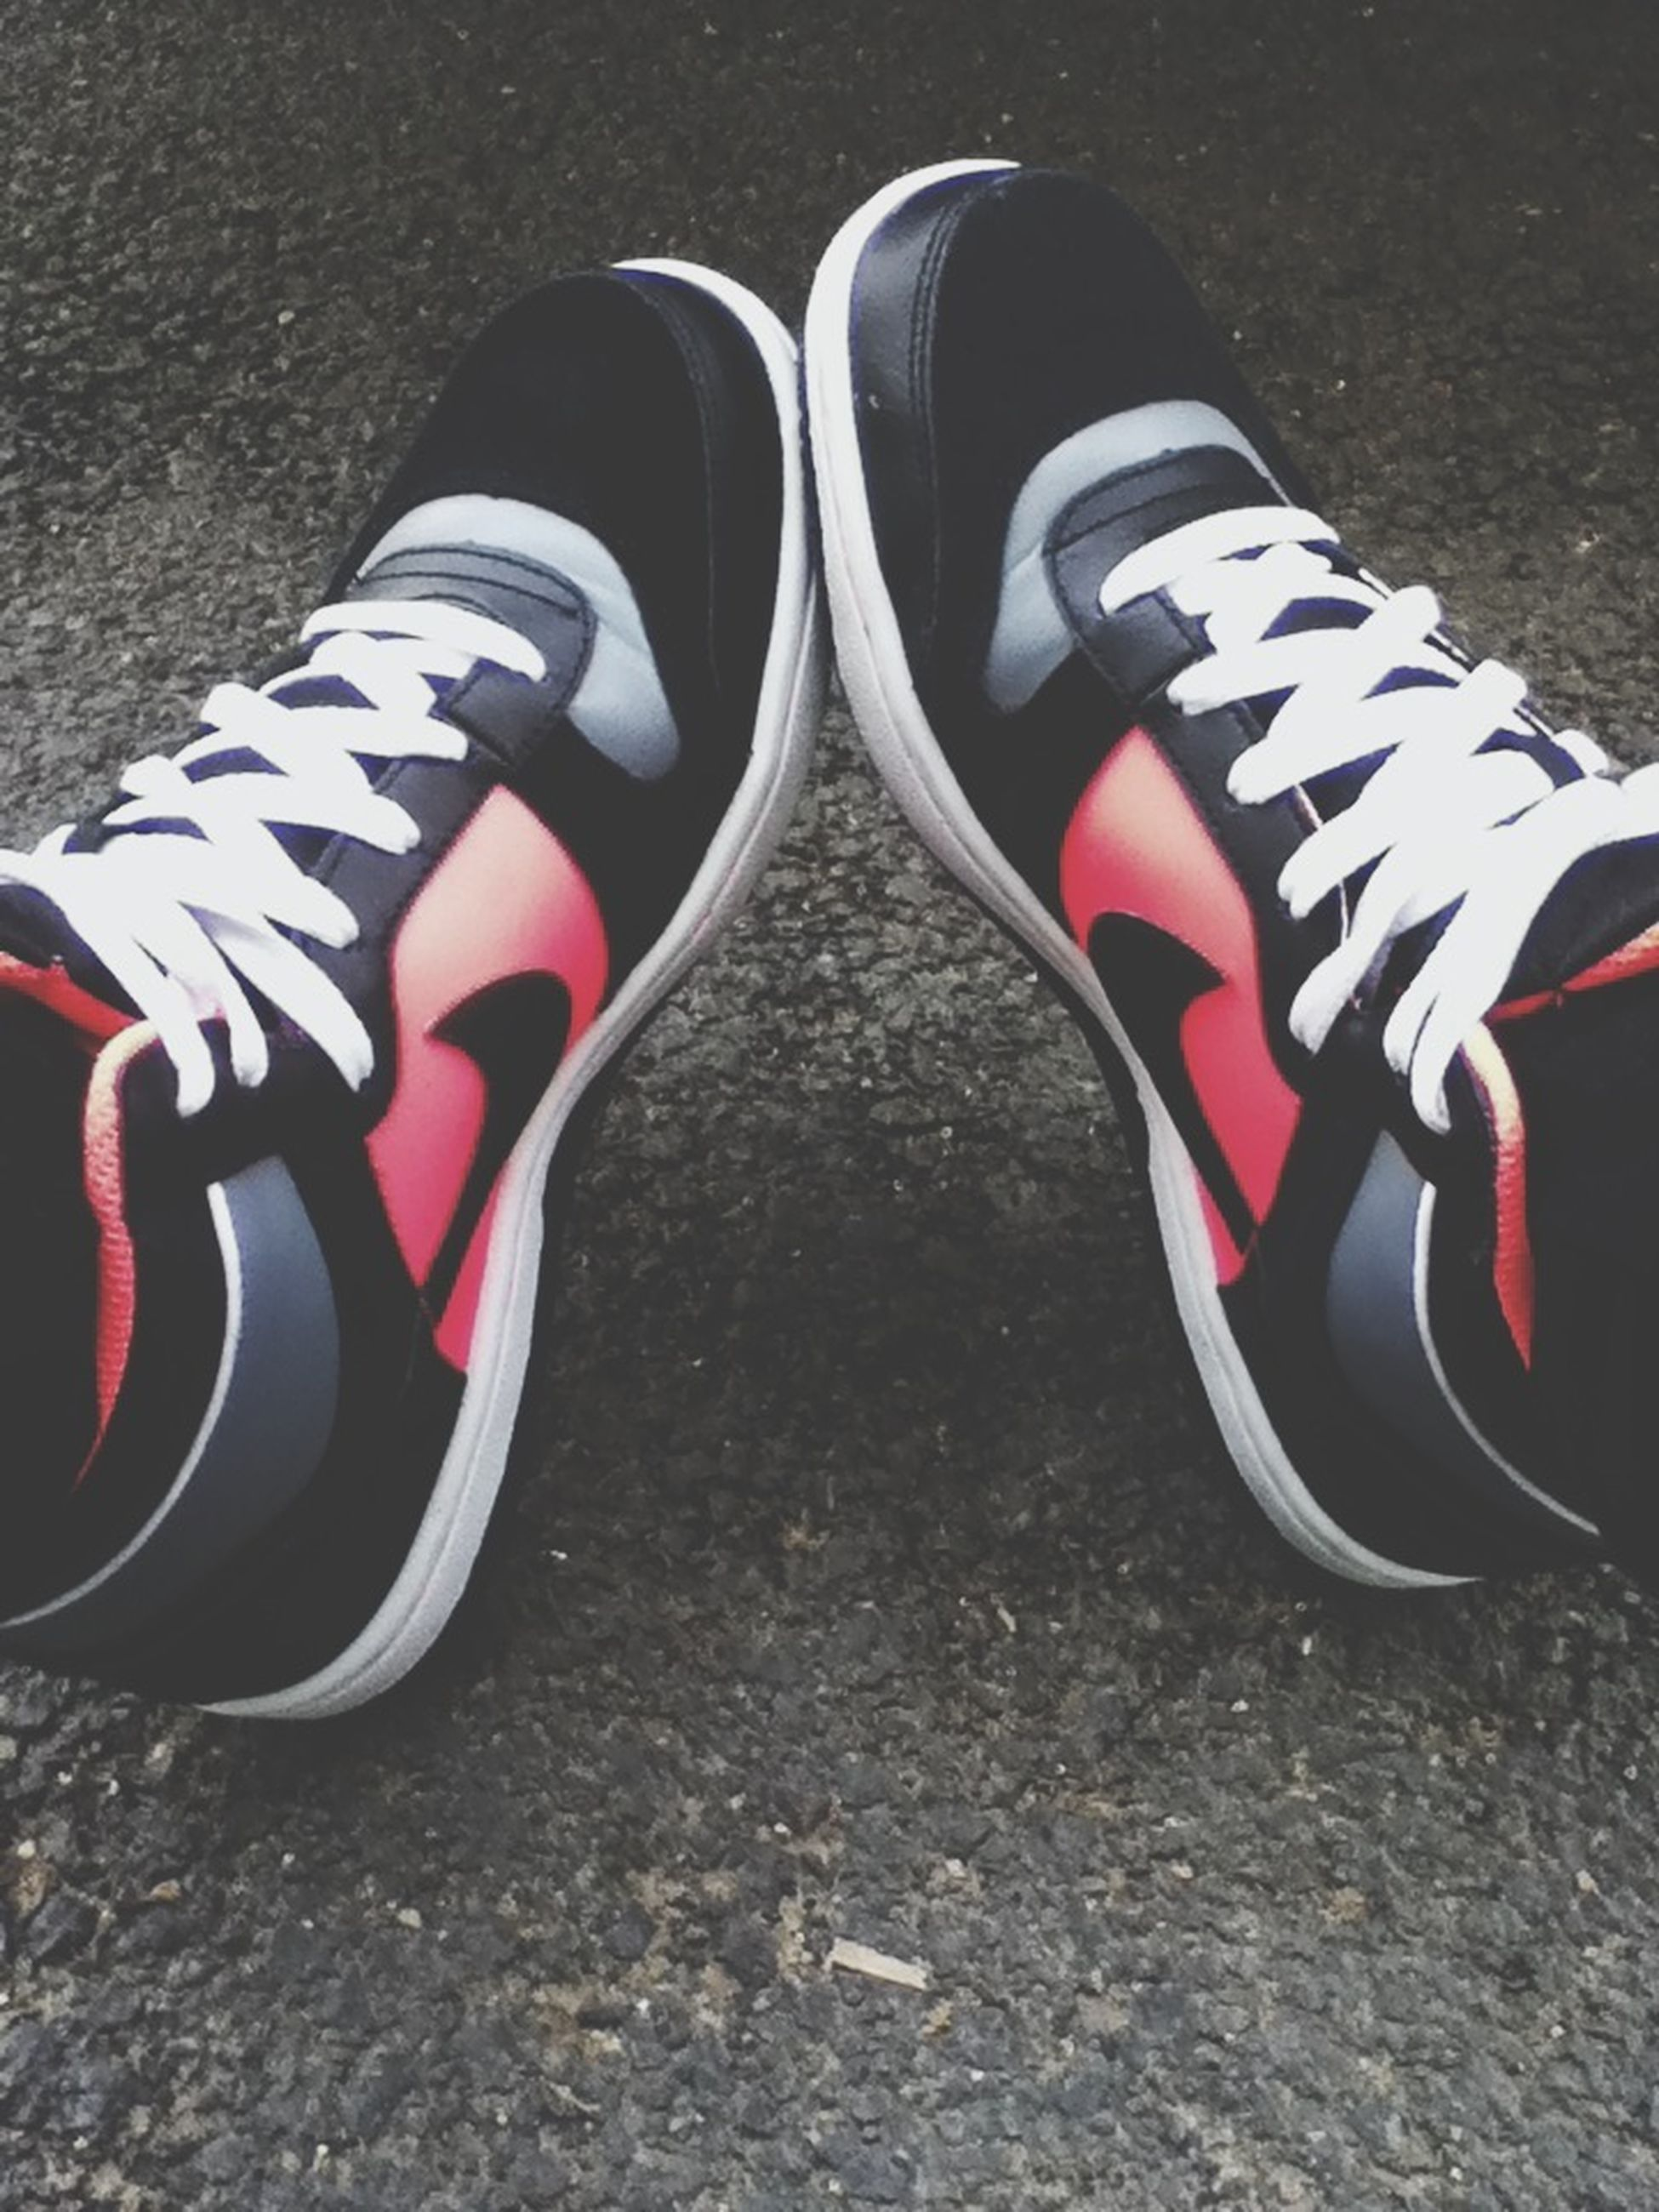 shoe, high angle view, footwear, low section, person, striped, pair, close-up, identity, red, fashion, patriotism, white color, canvas shoe, street, one person, multi colored, shoelace, outdoors, day